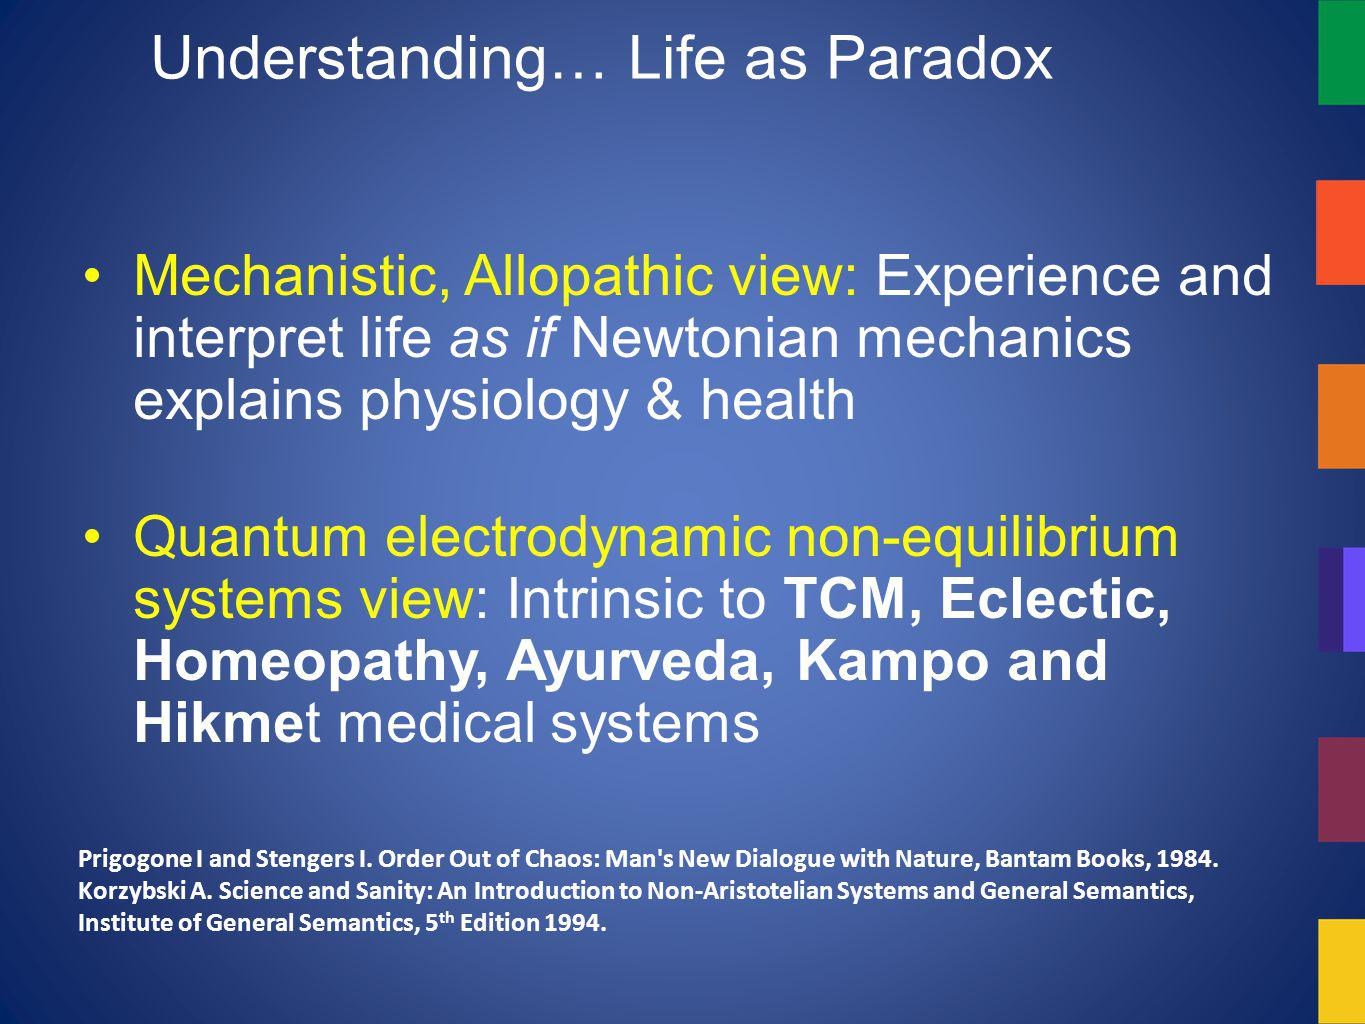 Understanding… Life as Paradox Mechanistic, Allopathic view: Experience and interpret life as if Newtonian mechanics explains physiology & health Quantum electrodynamic non-equilibrium systems view: Intrinsic to TCM, Eclectic, Homeopathy, Ayurveda, Kampo and Hikmet medical systems Prigogone I and Stengers I.